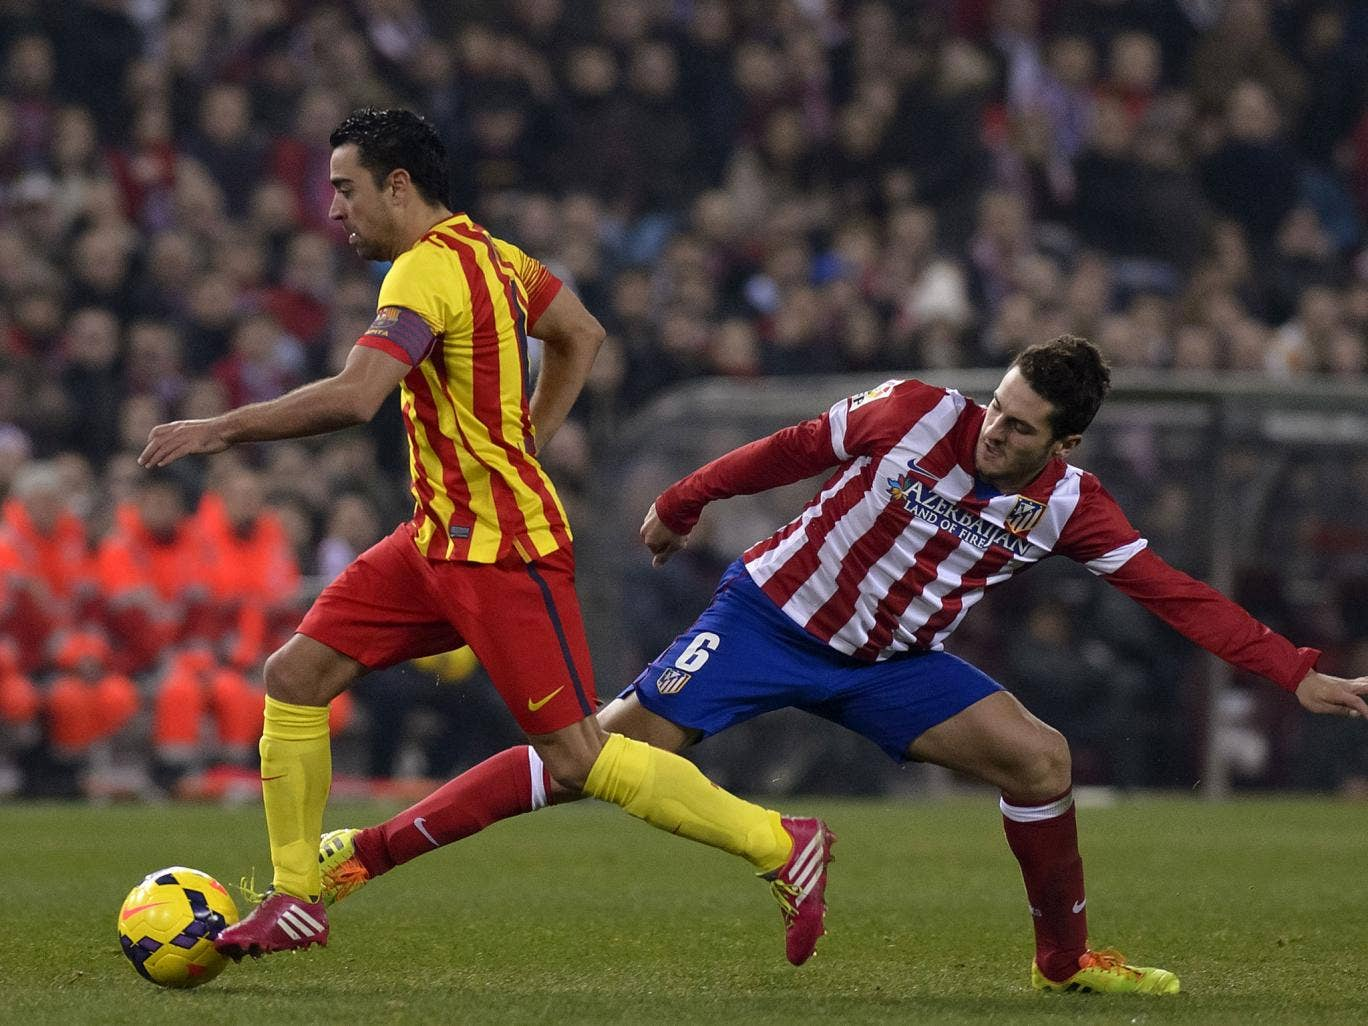 Xavi (left) and Koke vie for the ball during Barcelona's 0-0 La Liga draw at Atletico Madrid in January